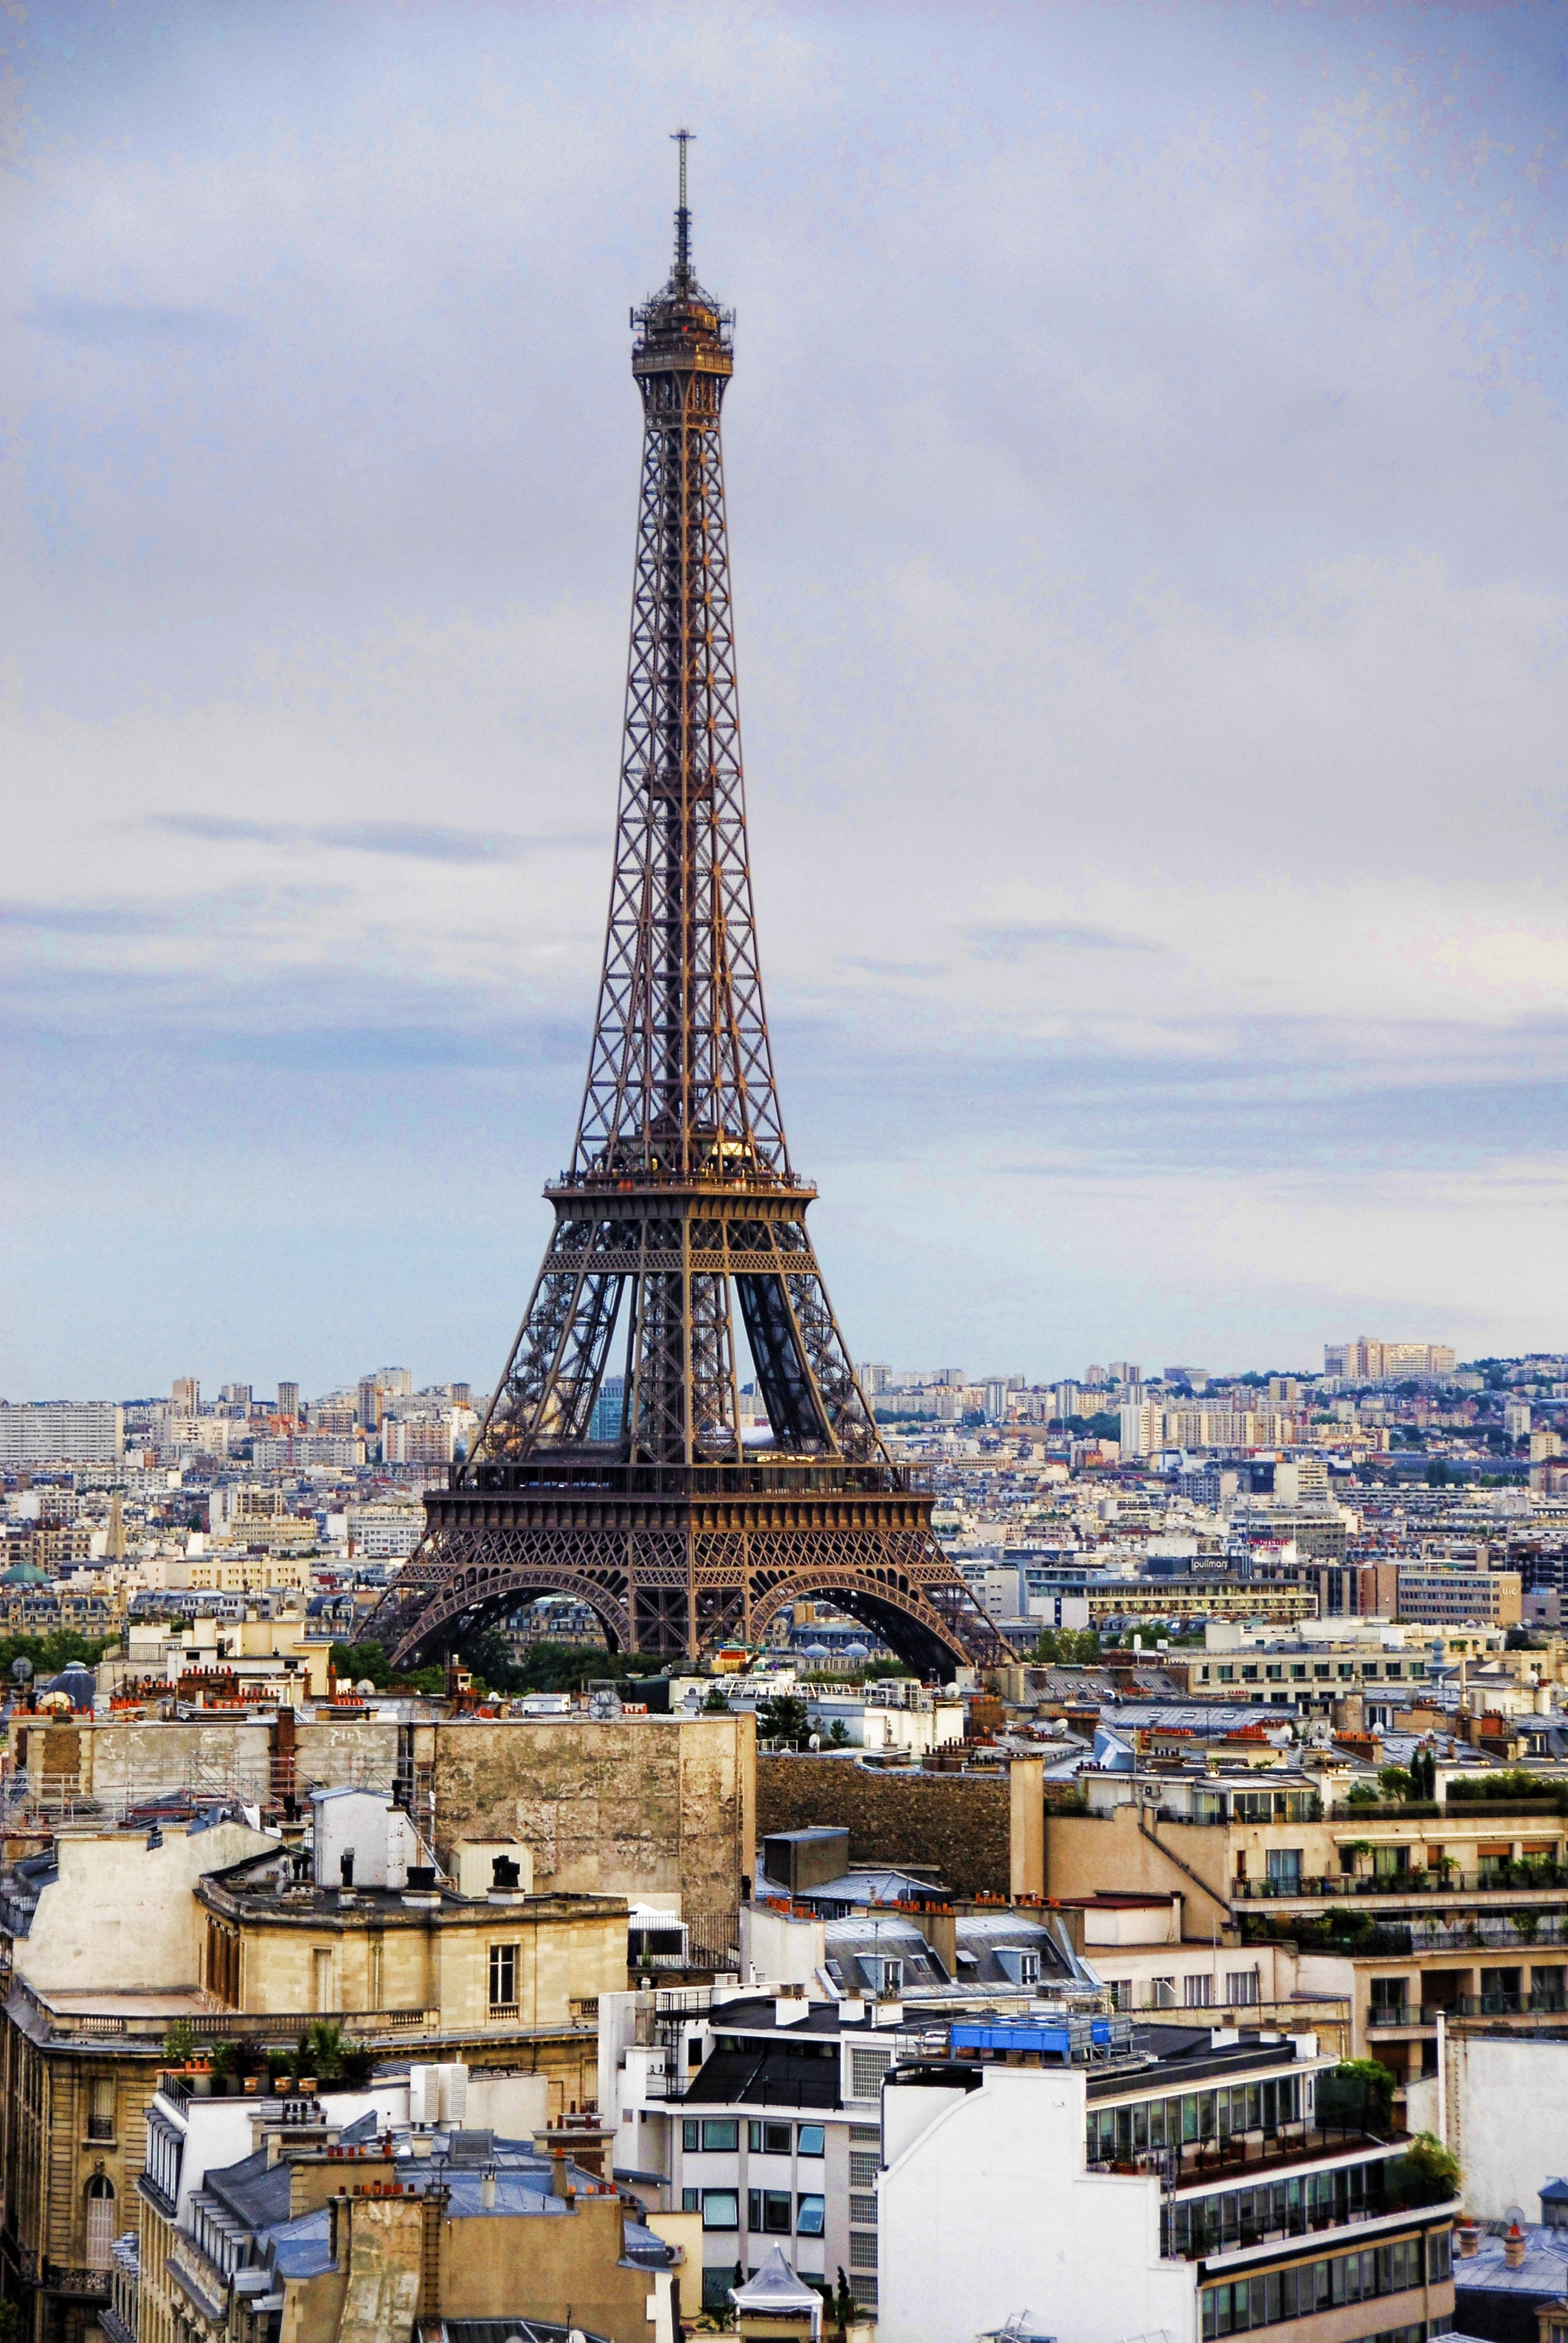 Eiffel Tower During Daytime 183 Free Stock Photo